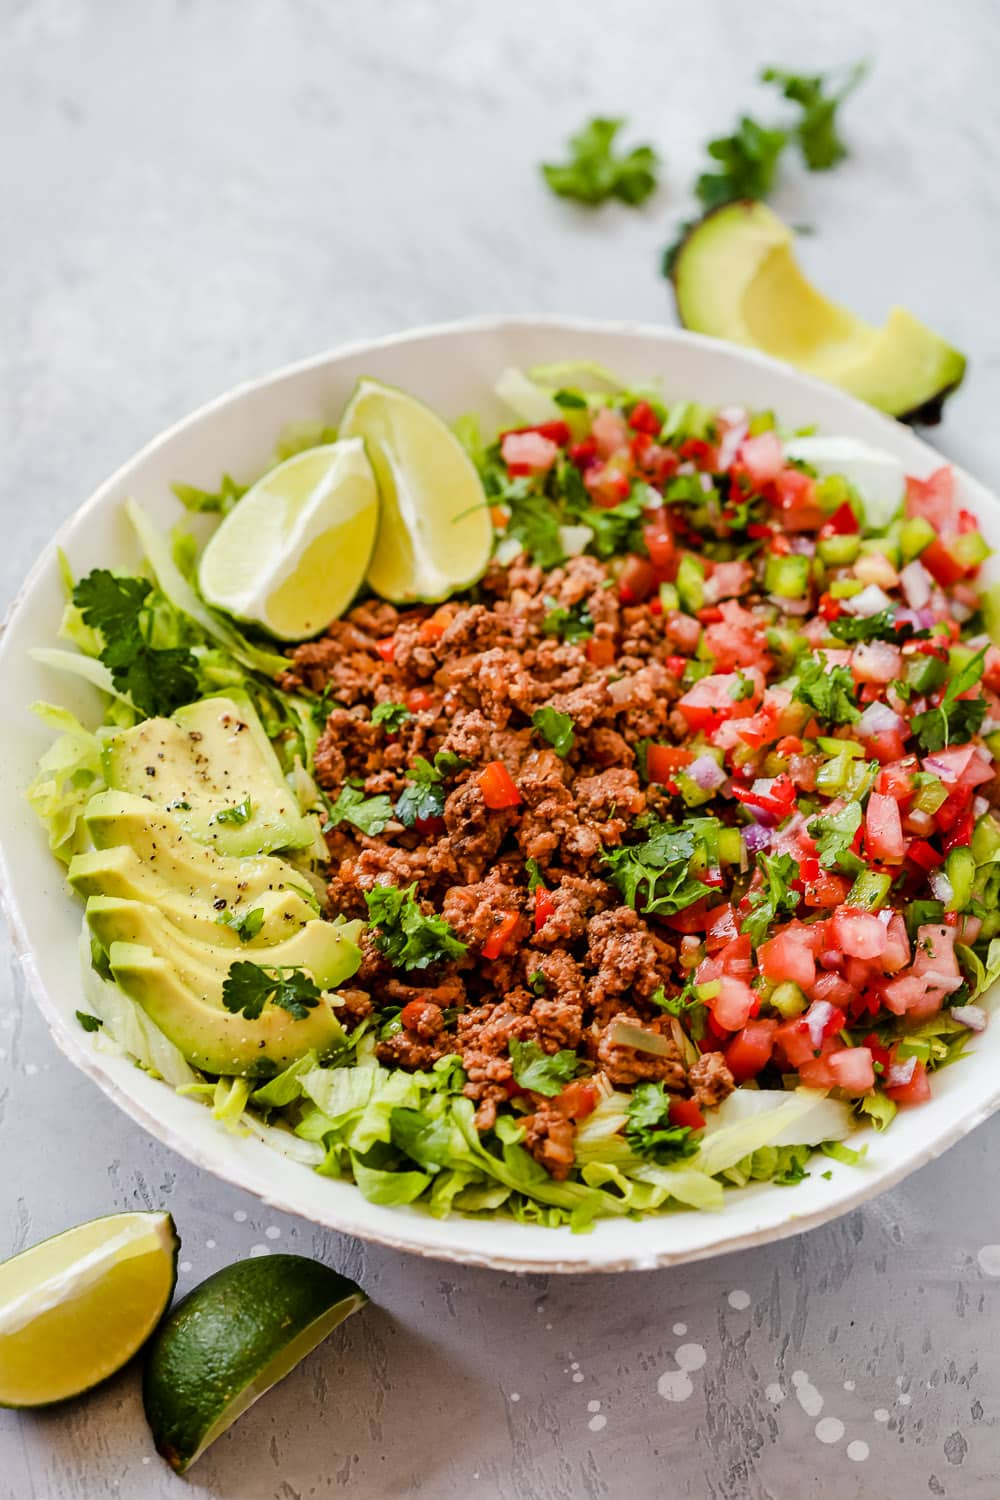 close-up of the Ground Beef Taco Salad with avocado slices